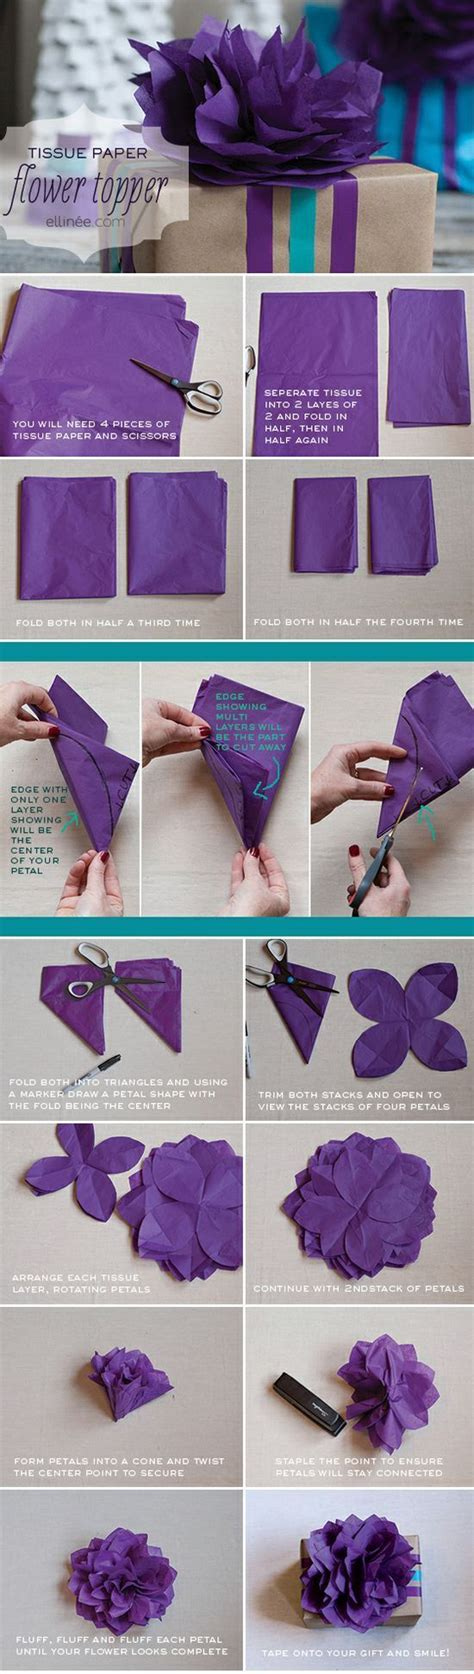 wrapping paper craft ideas 136 best images about tissue paper craft ideas on